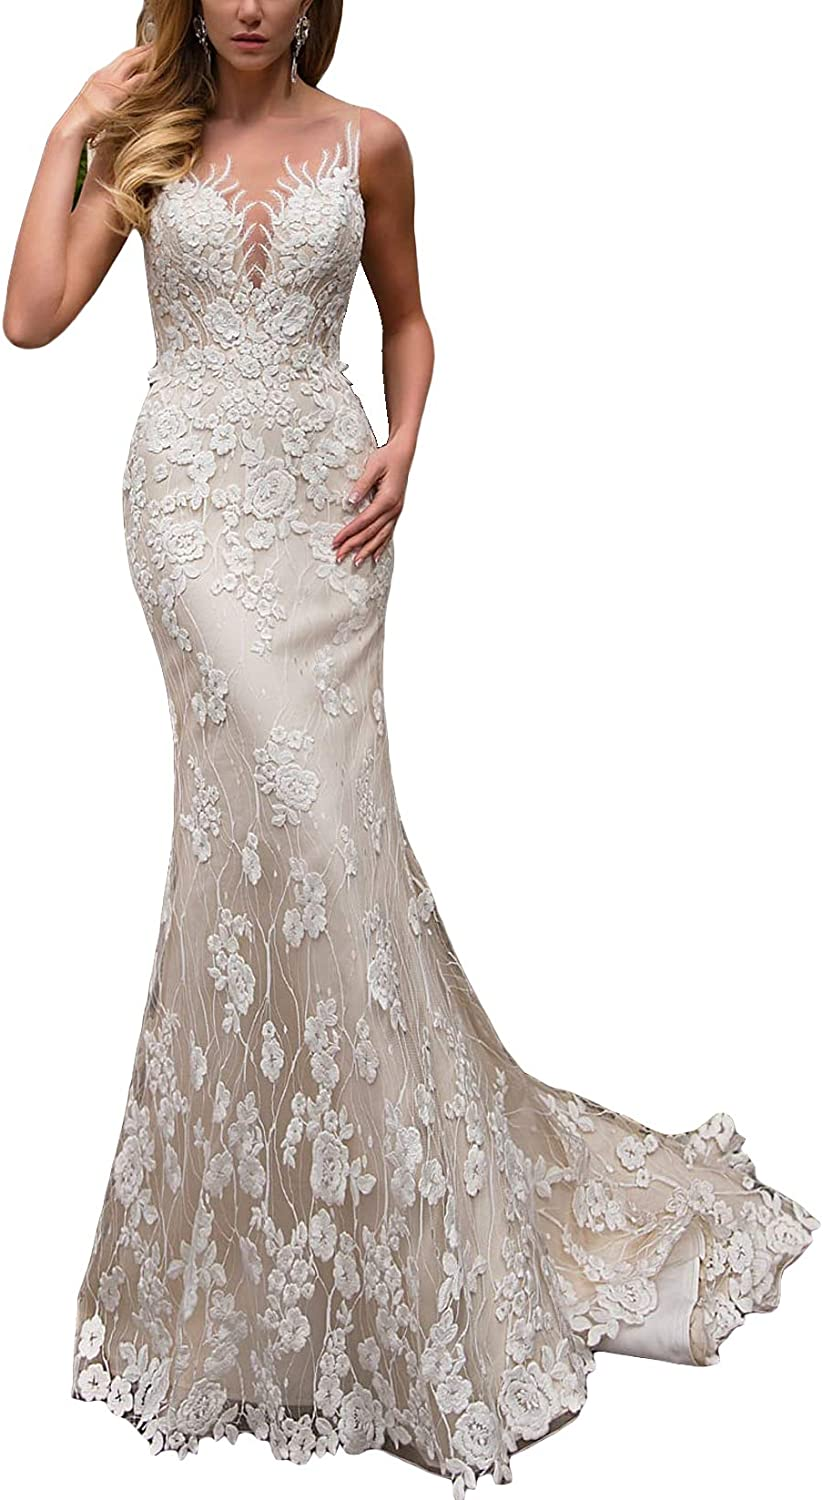 Fenghuavip Lace Mermaid Wedding Dress V Neck for Bride Satin and Tulle with Appliques